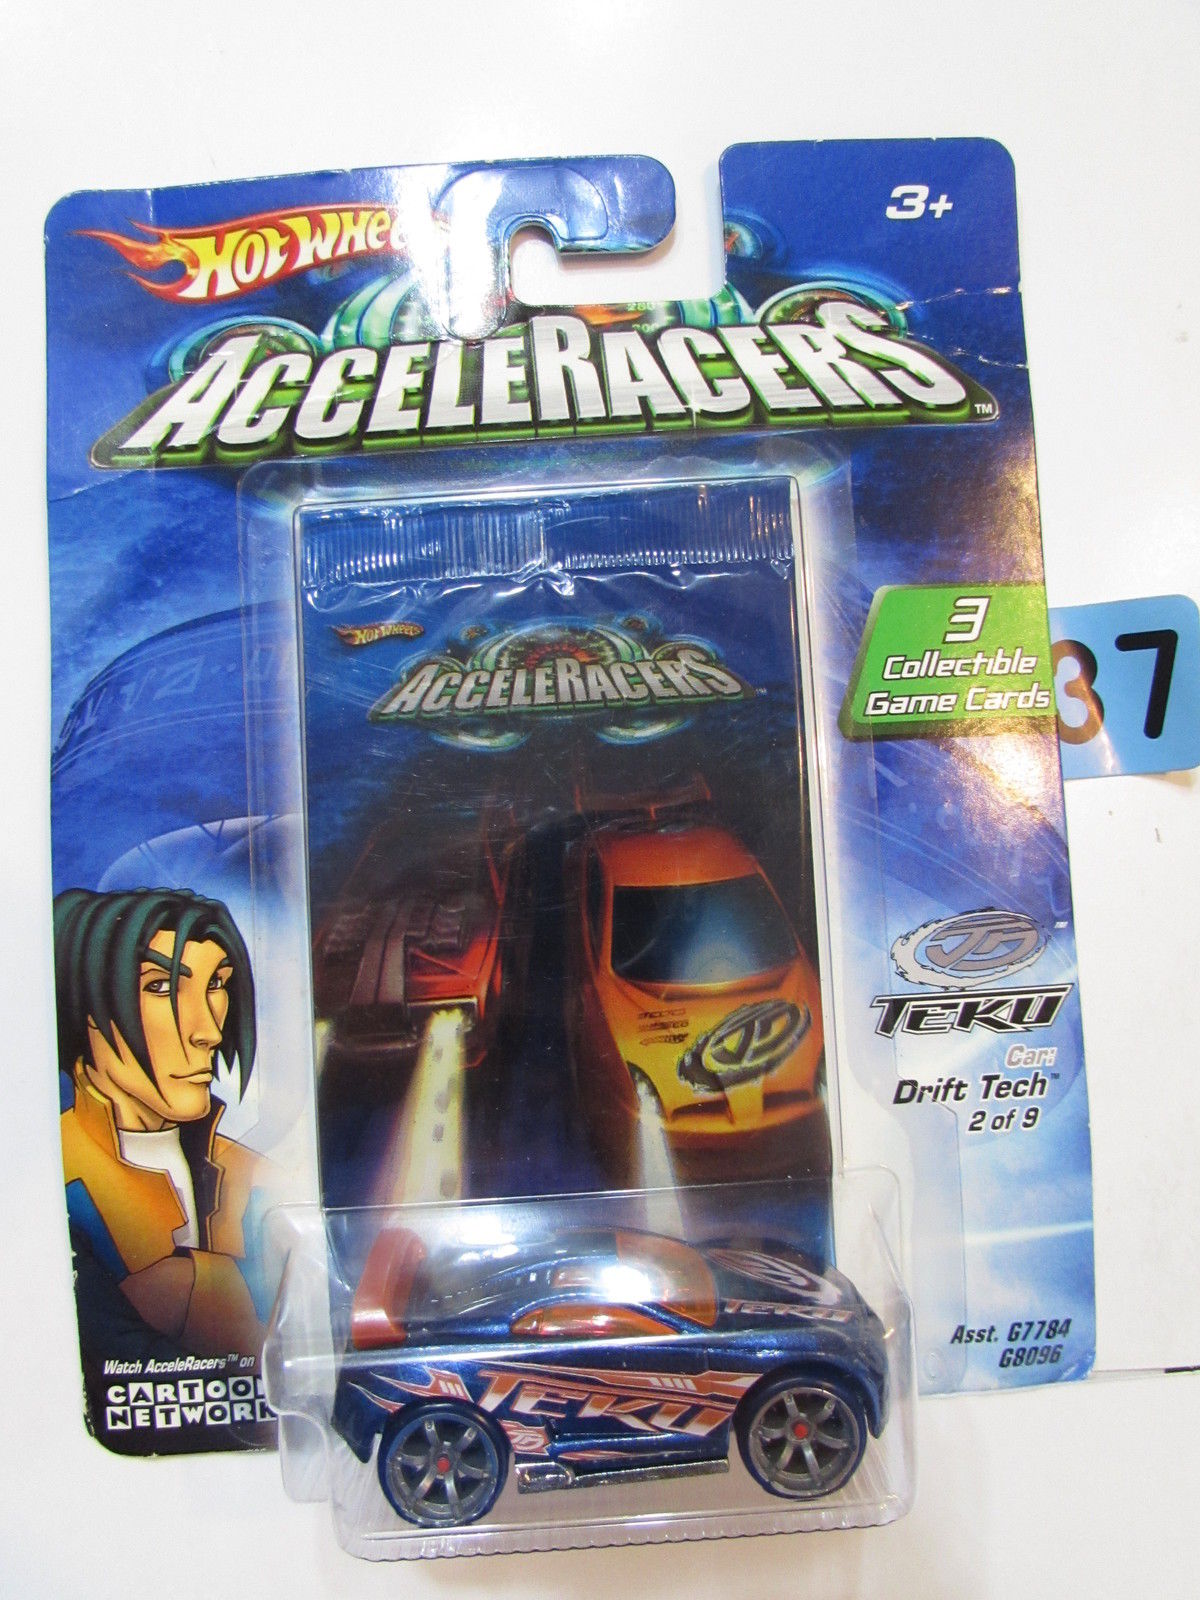 2004 HOT WHEELS ACCELERACERS DRIFT TECH #2/9 - 3 COLLECTIBLE GAME CARDS